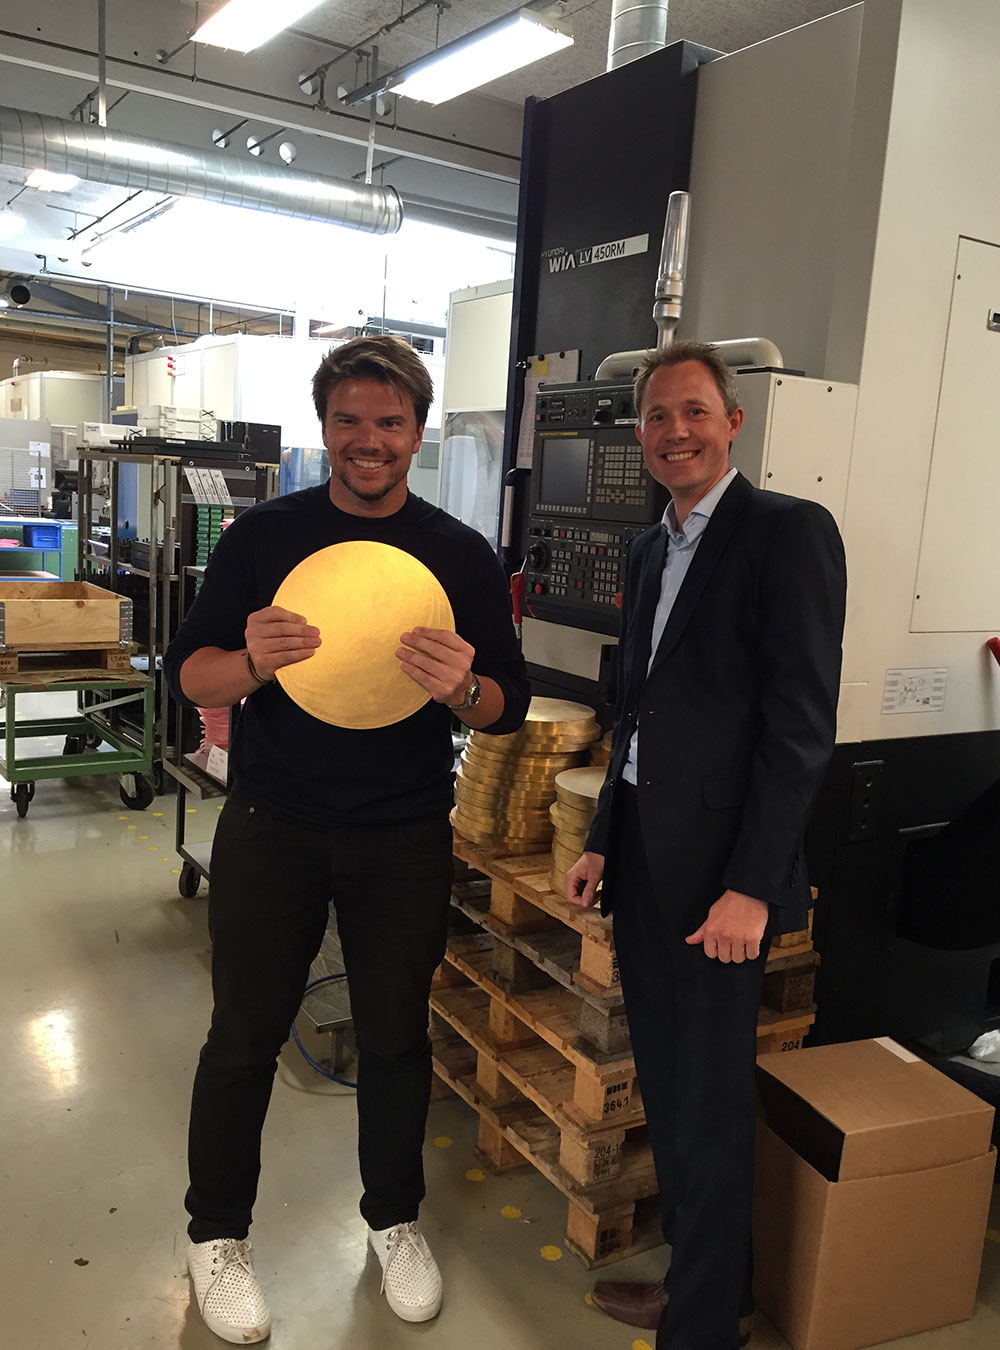 Bjarke Ingels at the VOLA Academy in Horsens